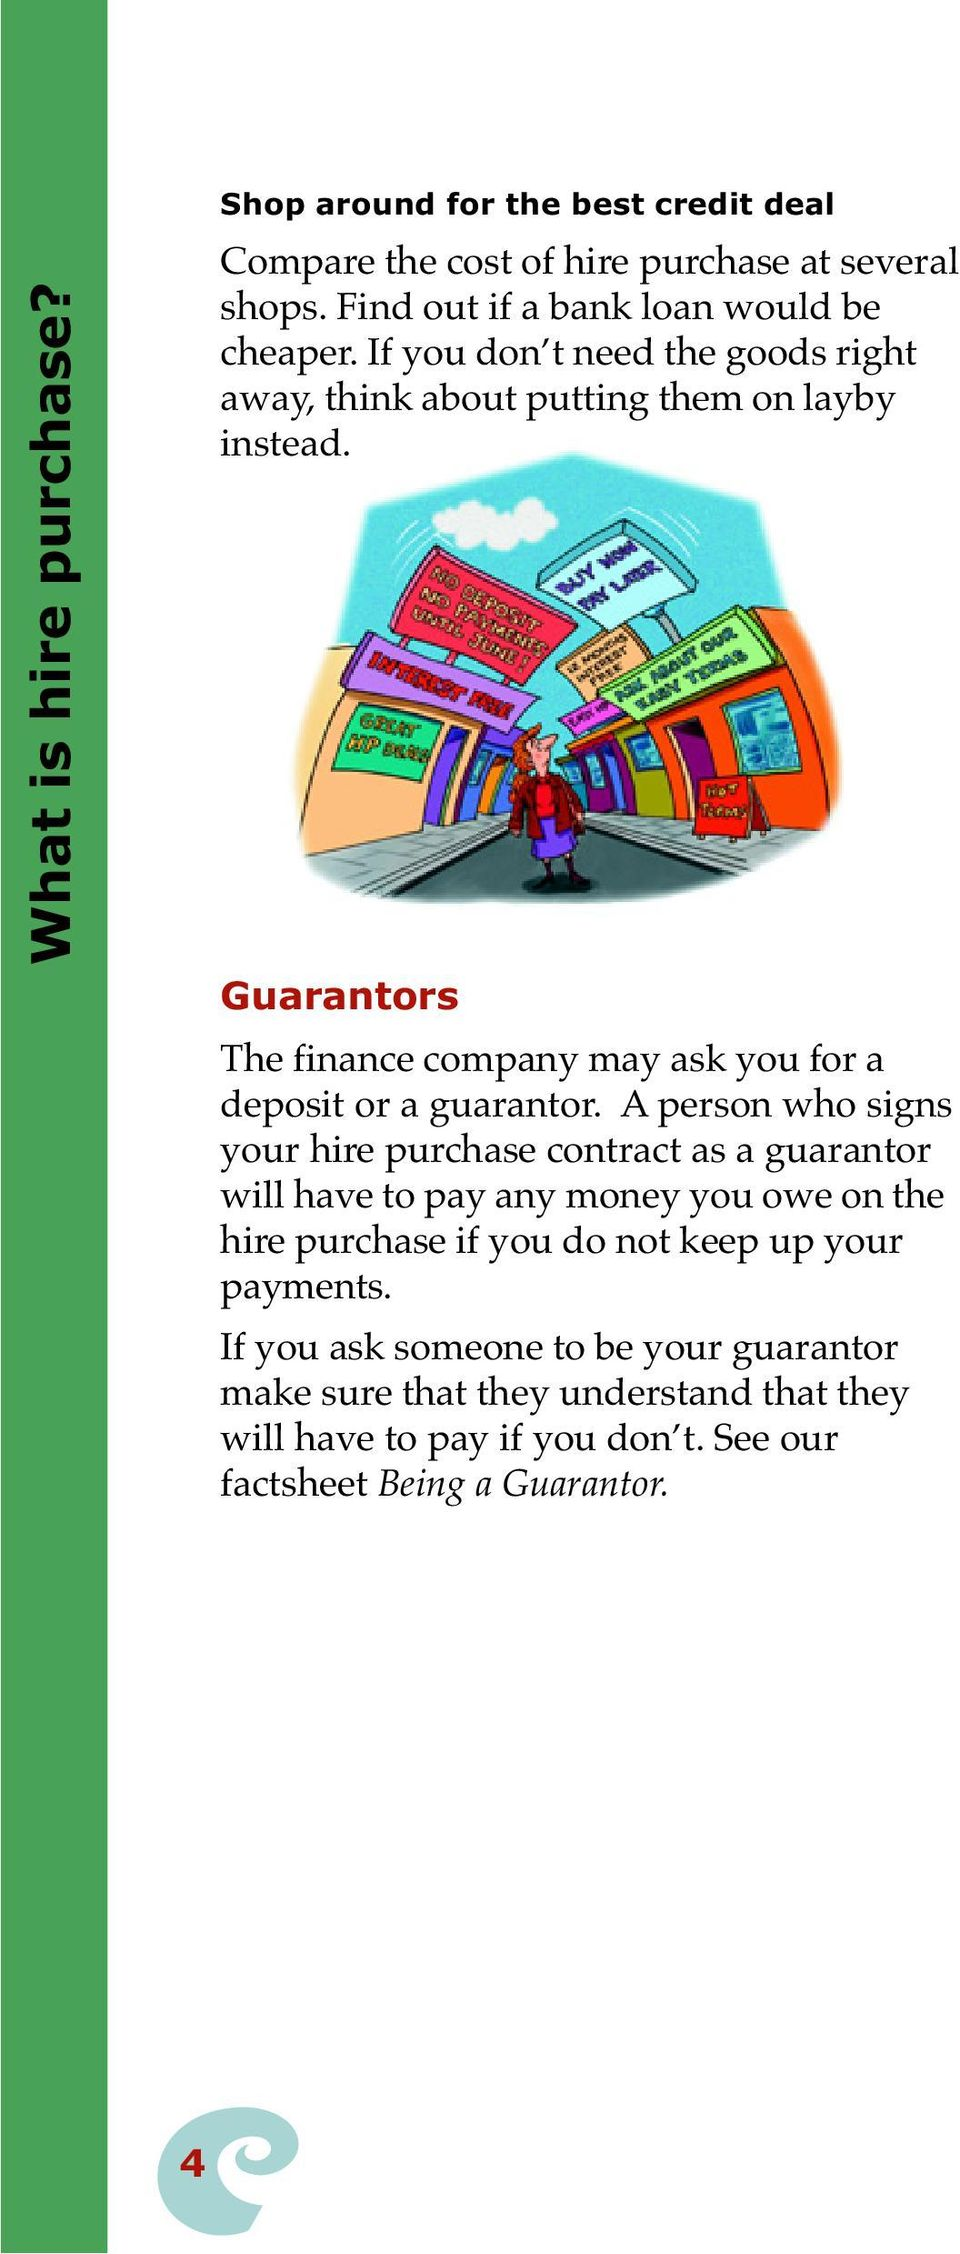 Guarantors The finance company may ask you for a deposit or a guarantor.